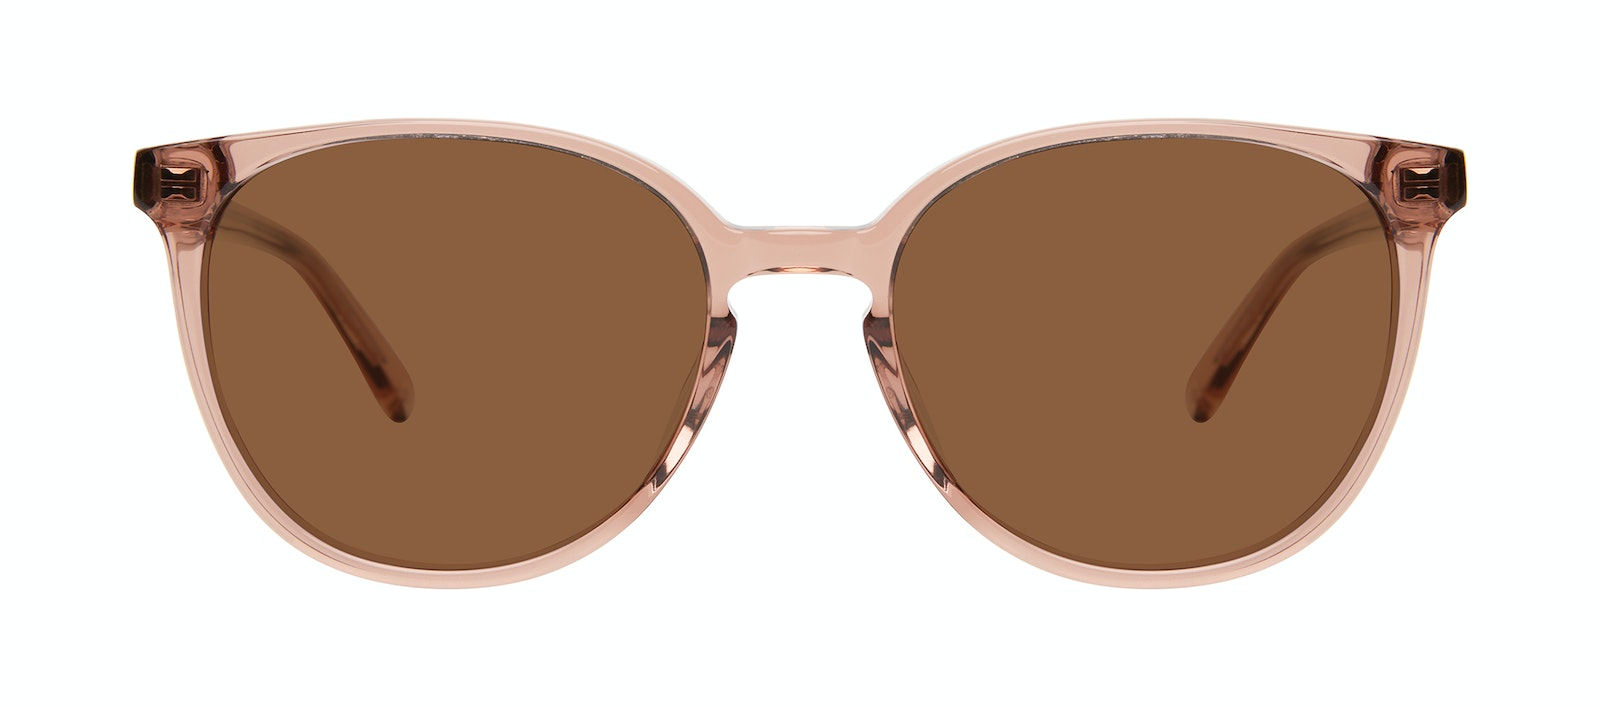 Affordable Fashion Glasses Round Sunglasses Women Impression Rose Front